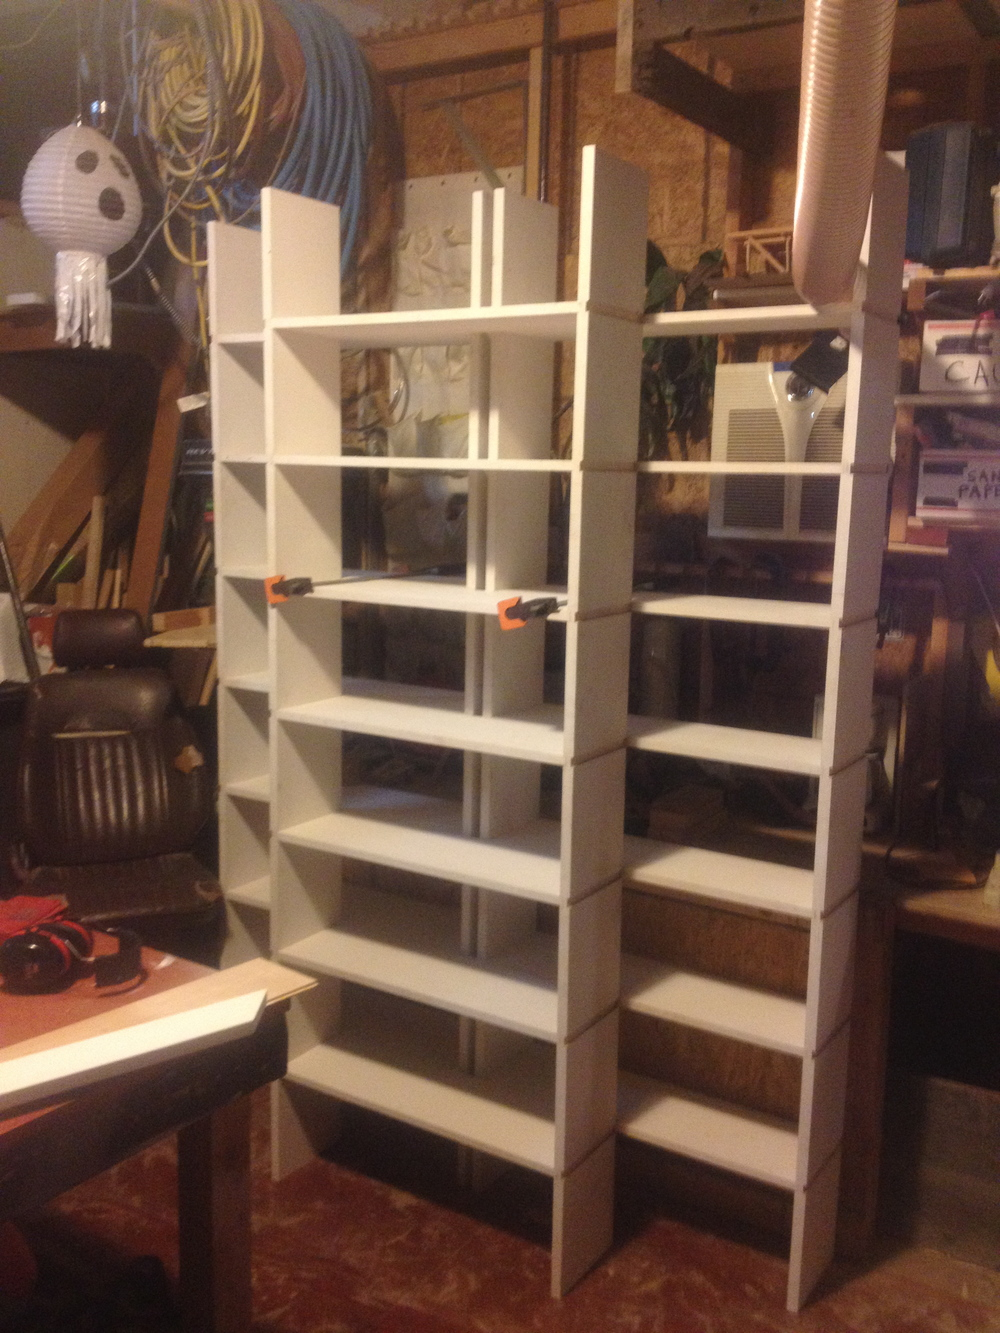 HILL BOOKCASE FREESTANDING.jpg